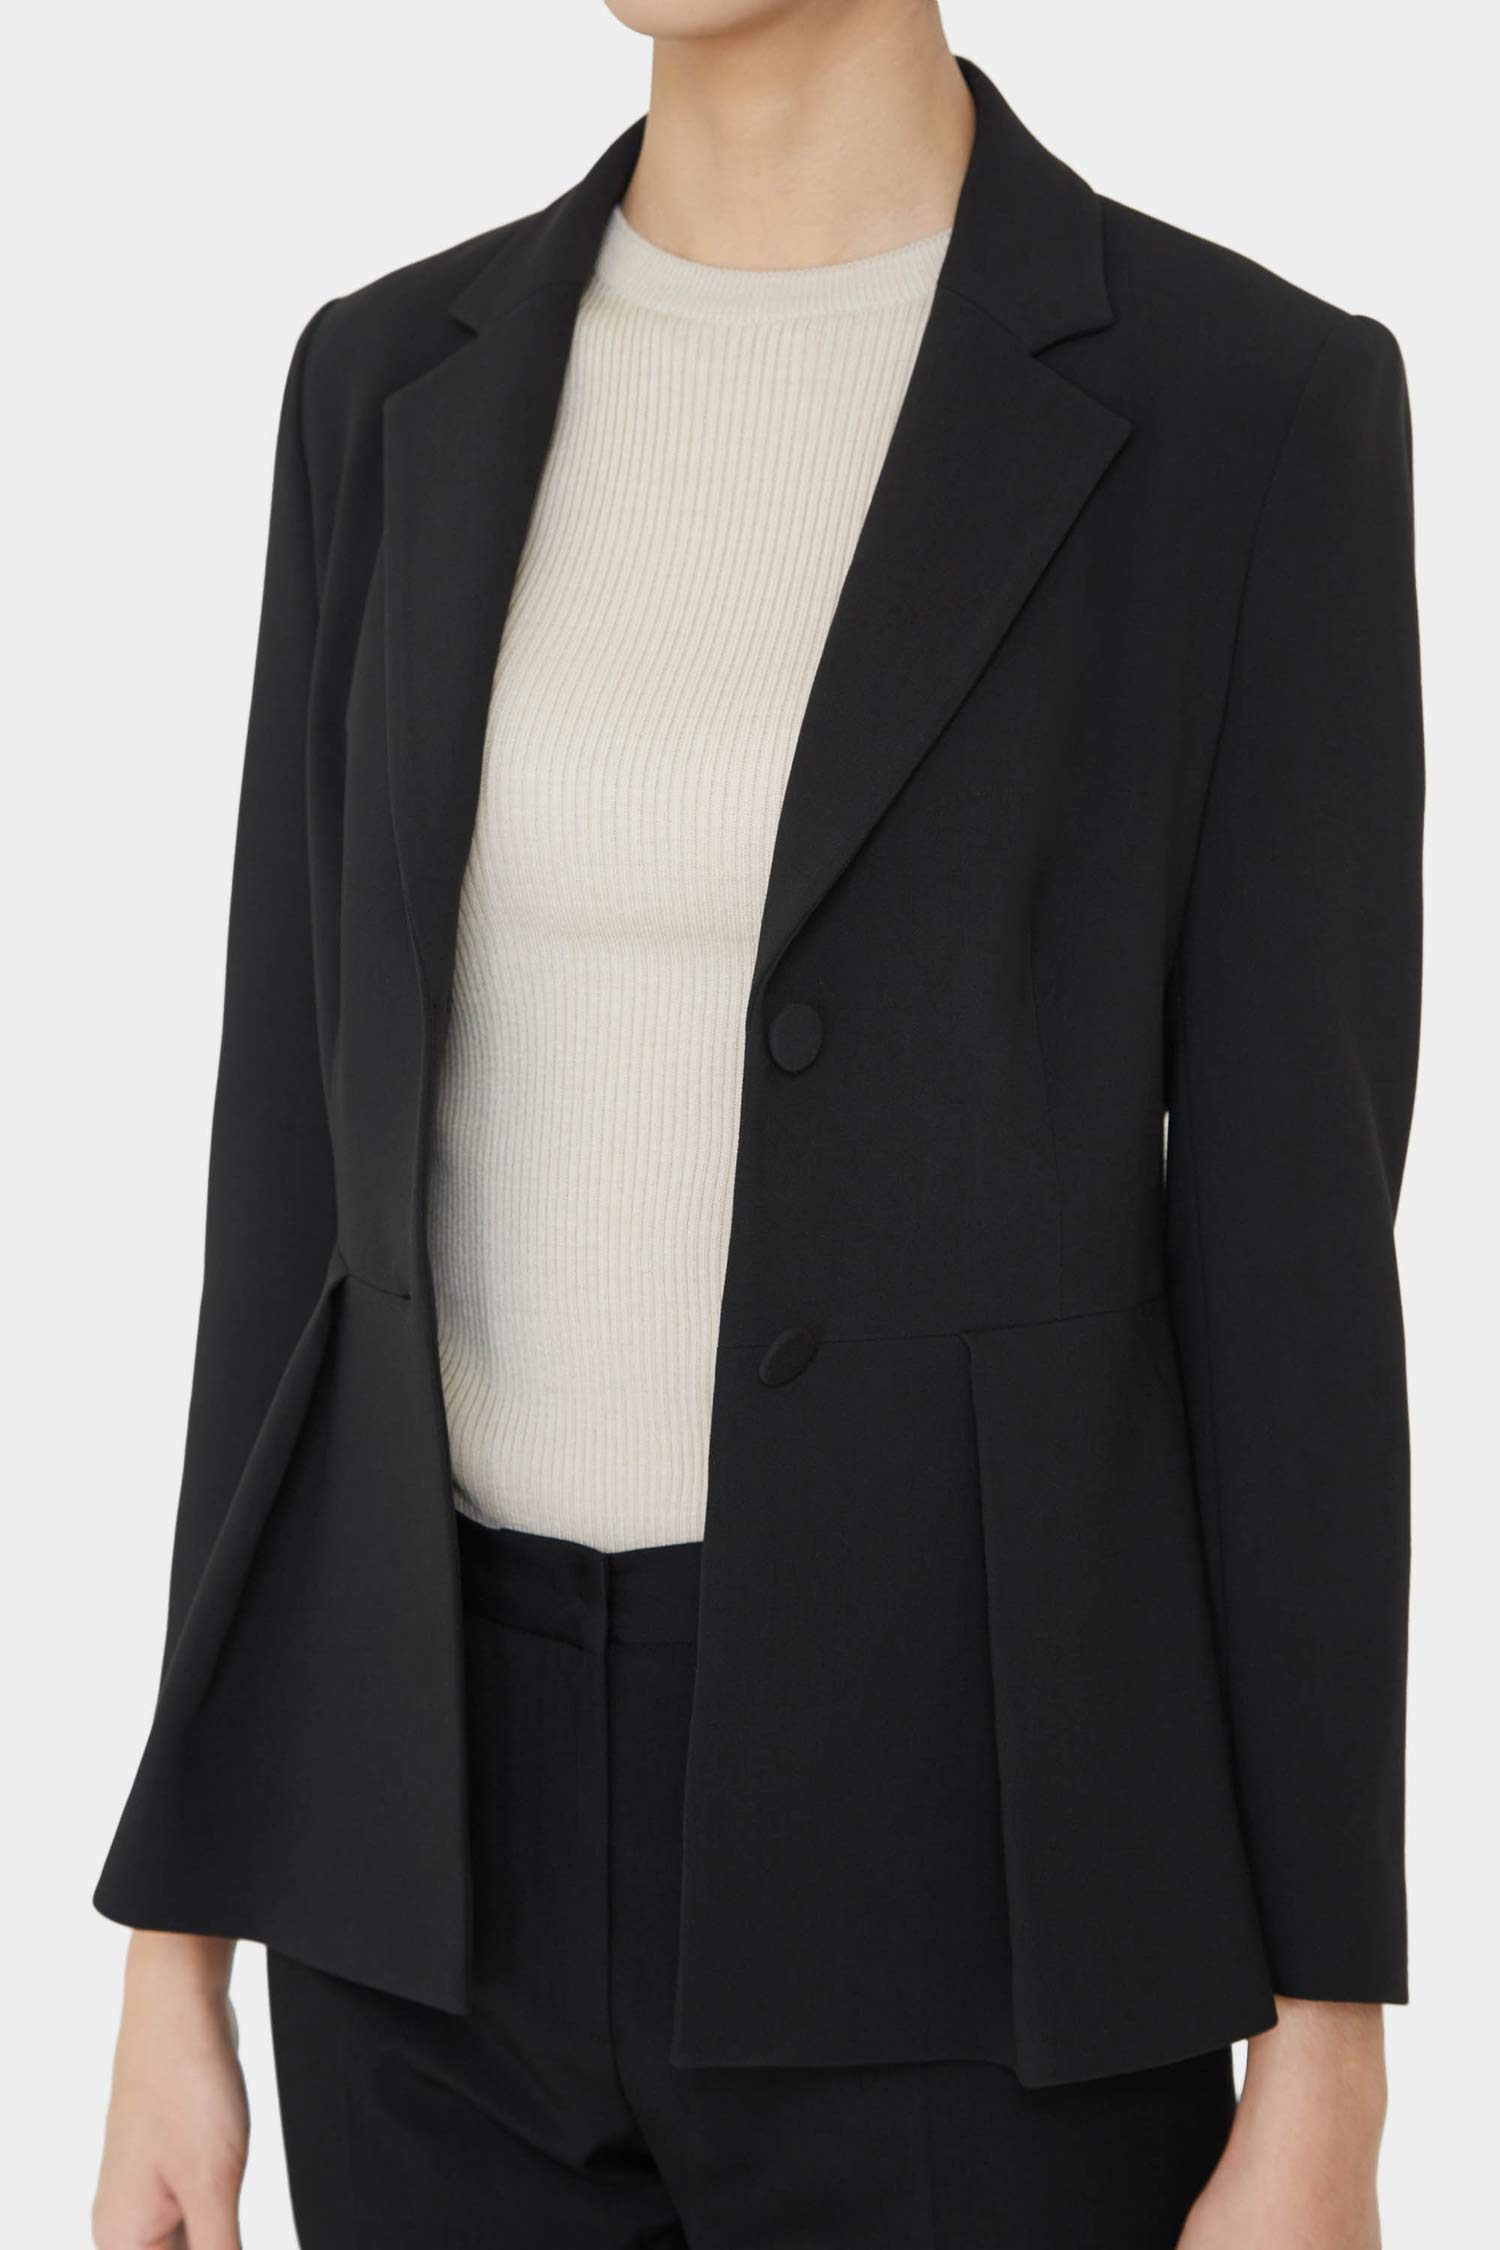 BLACK GWEN PERFECT LADY JACKET